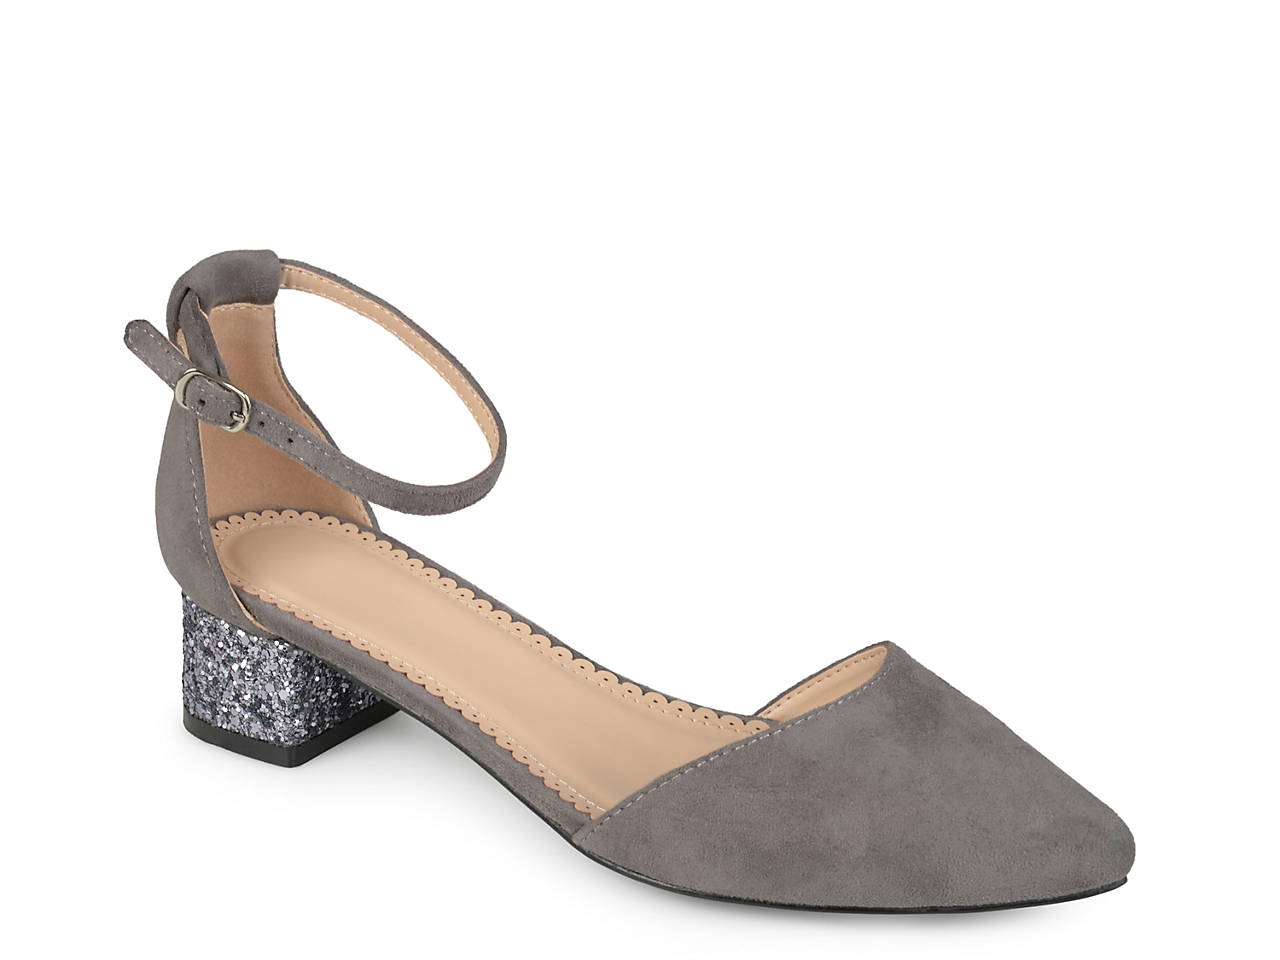 Journee Collection Maisy ... Women's High Heels choice cheap price free shipping best seller real with credit card online cheap pick a best MBZGx0